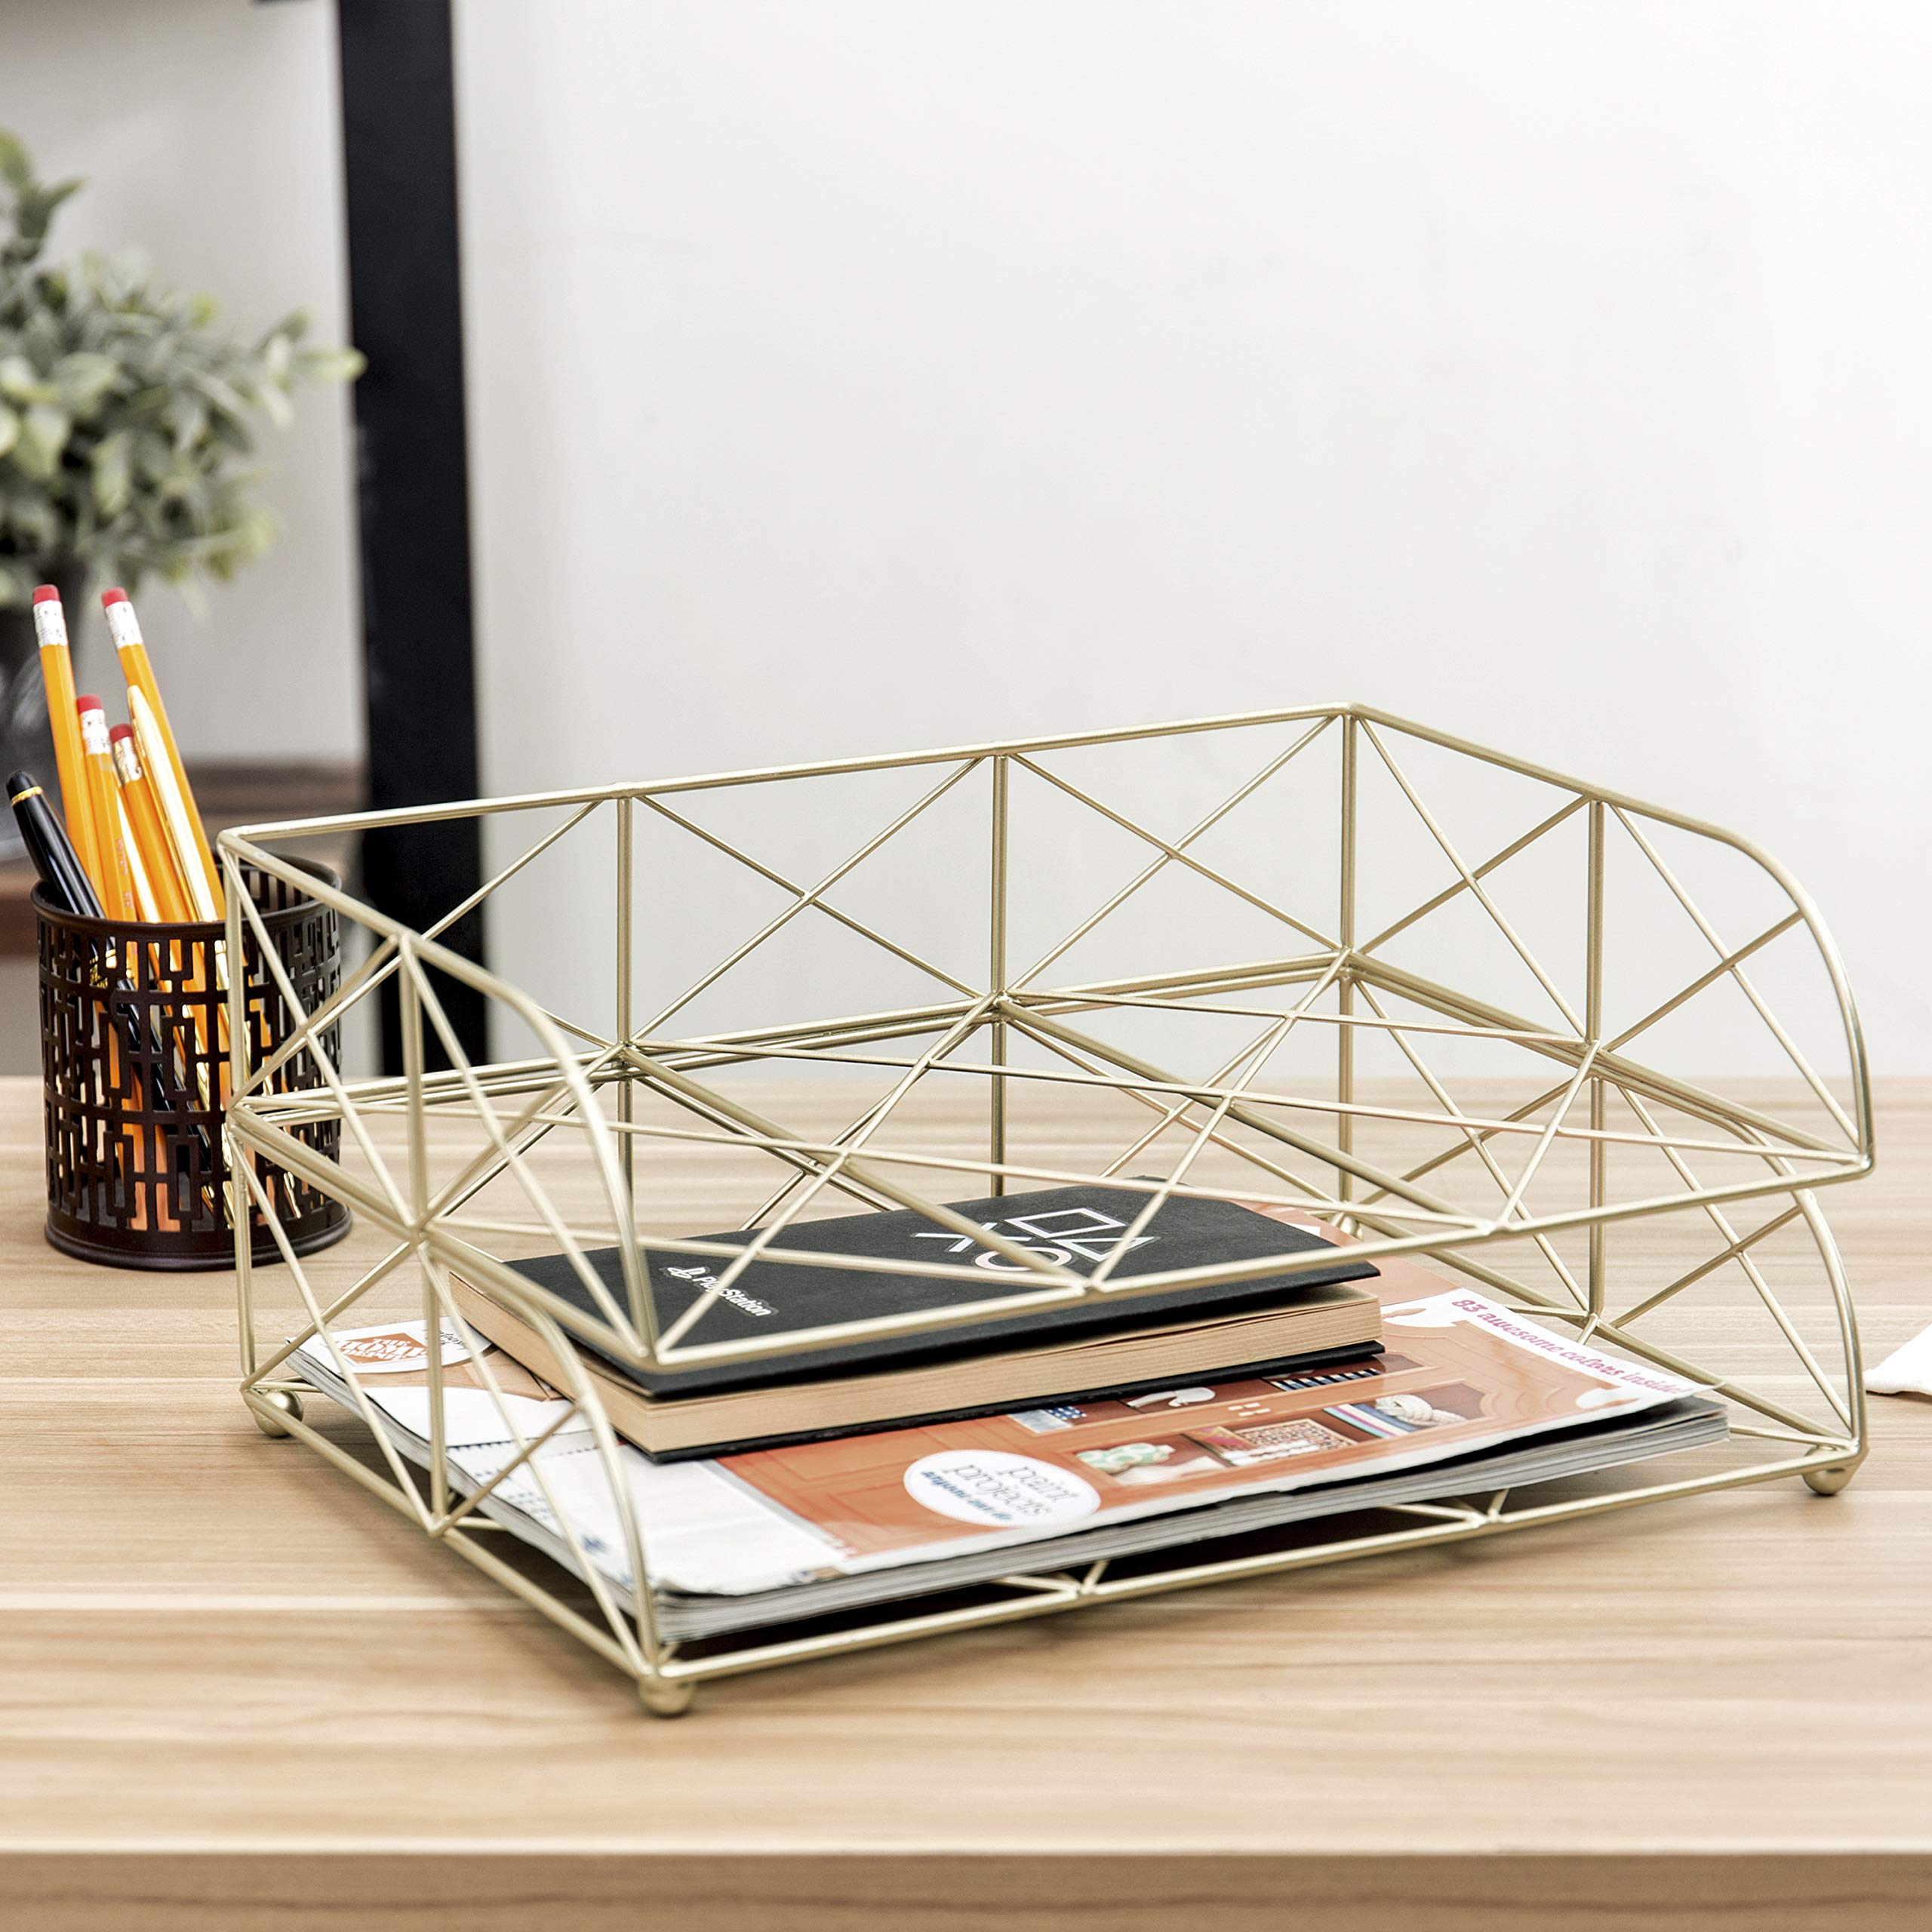 MyGift 2-Tier Geometric Light Gold-Tone Metal Desktop Stacked Letter Tray by MyGift (Image #2)